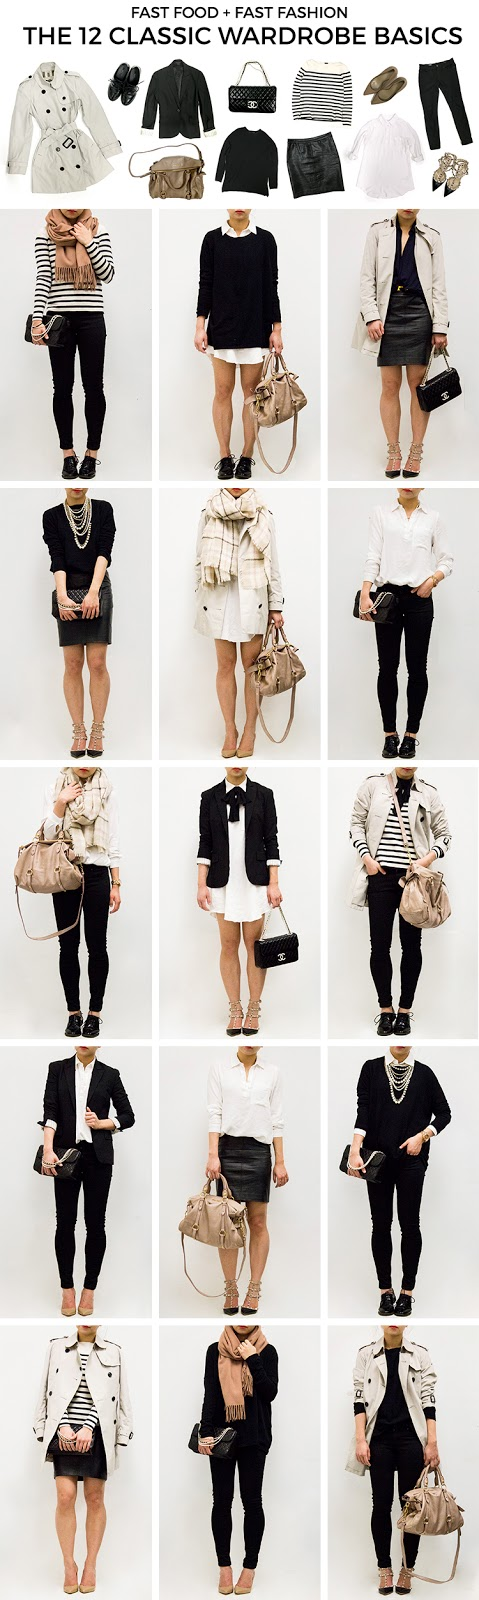 http://www.fastfoodandfastfashion.com/2016/04/the-ultimate-capsule-wardrobe-basics.html?utm_source=bloglovin.com&utm_medium=feed&utm_campaign=Feed%3A+FastFoodandFastFashion+%28Fast+Food+%26amp%3B+Fast+Fashion%29